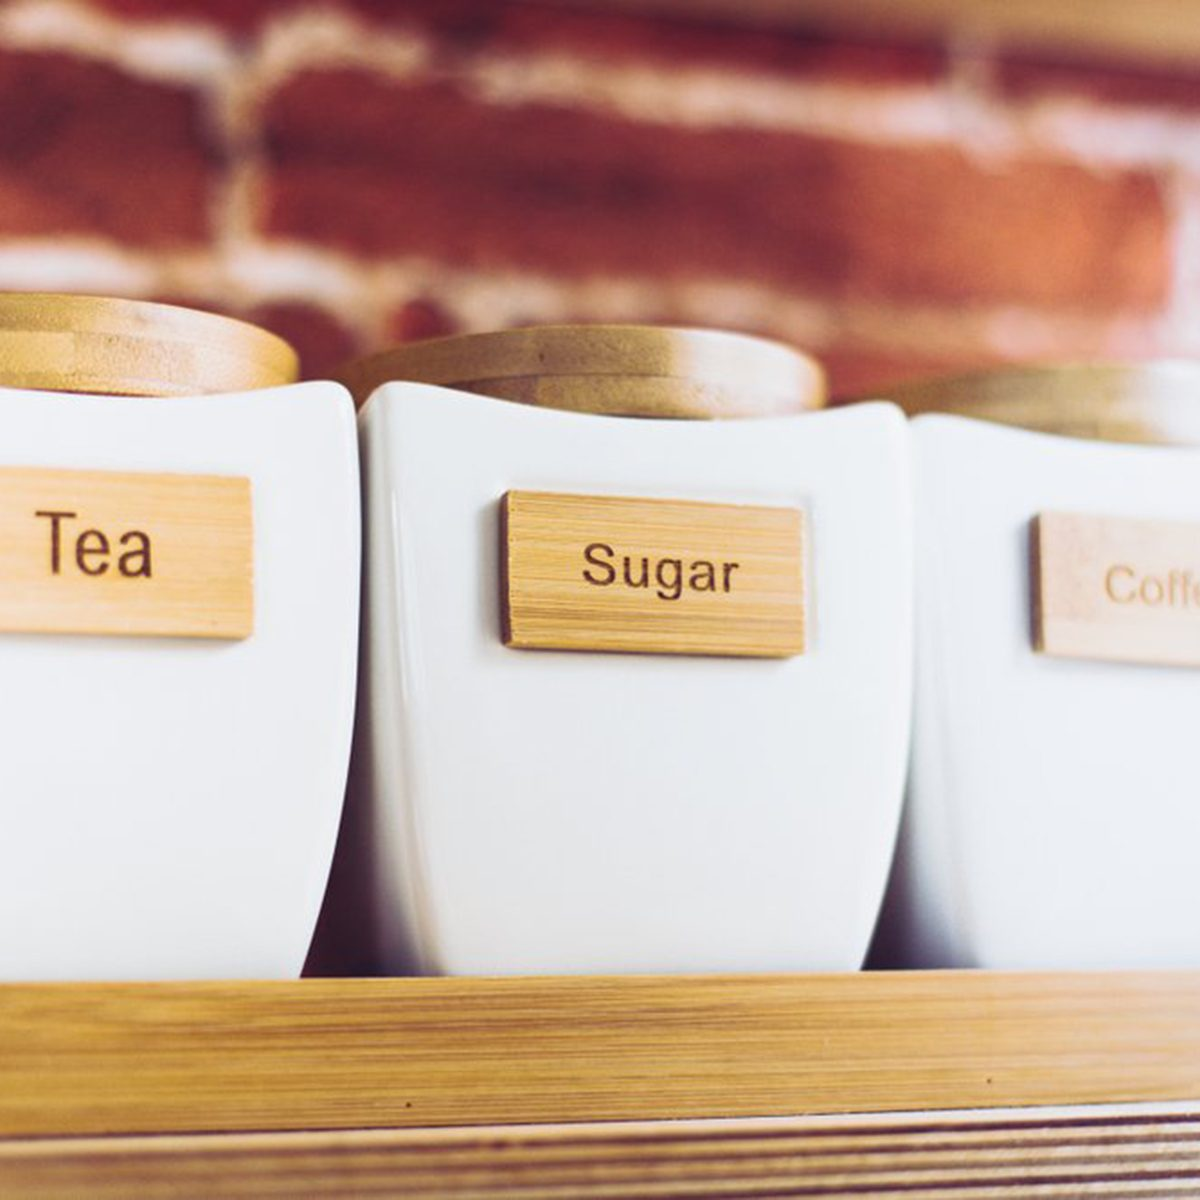 Canisters of tea, sugar and coffee